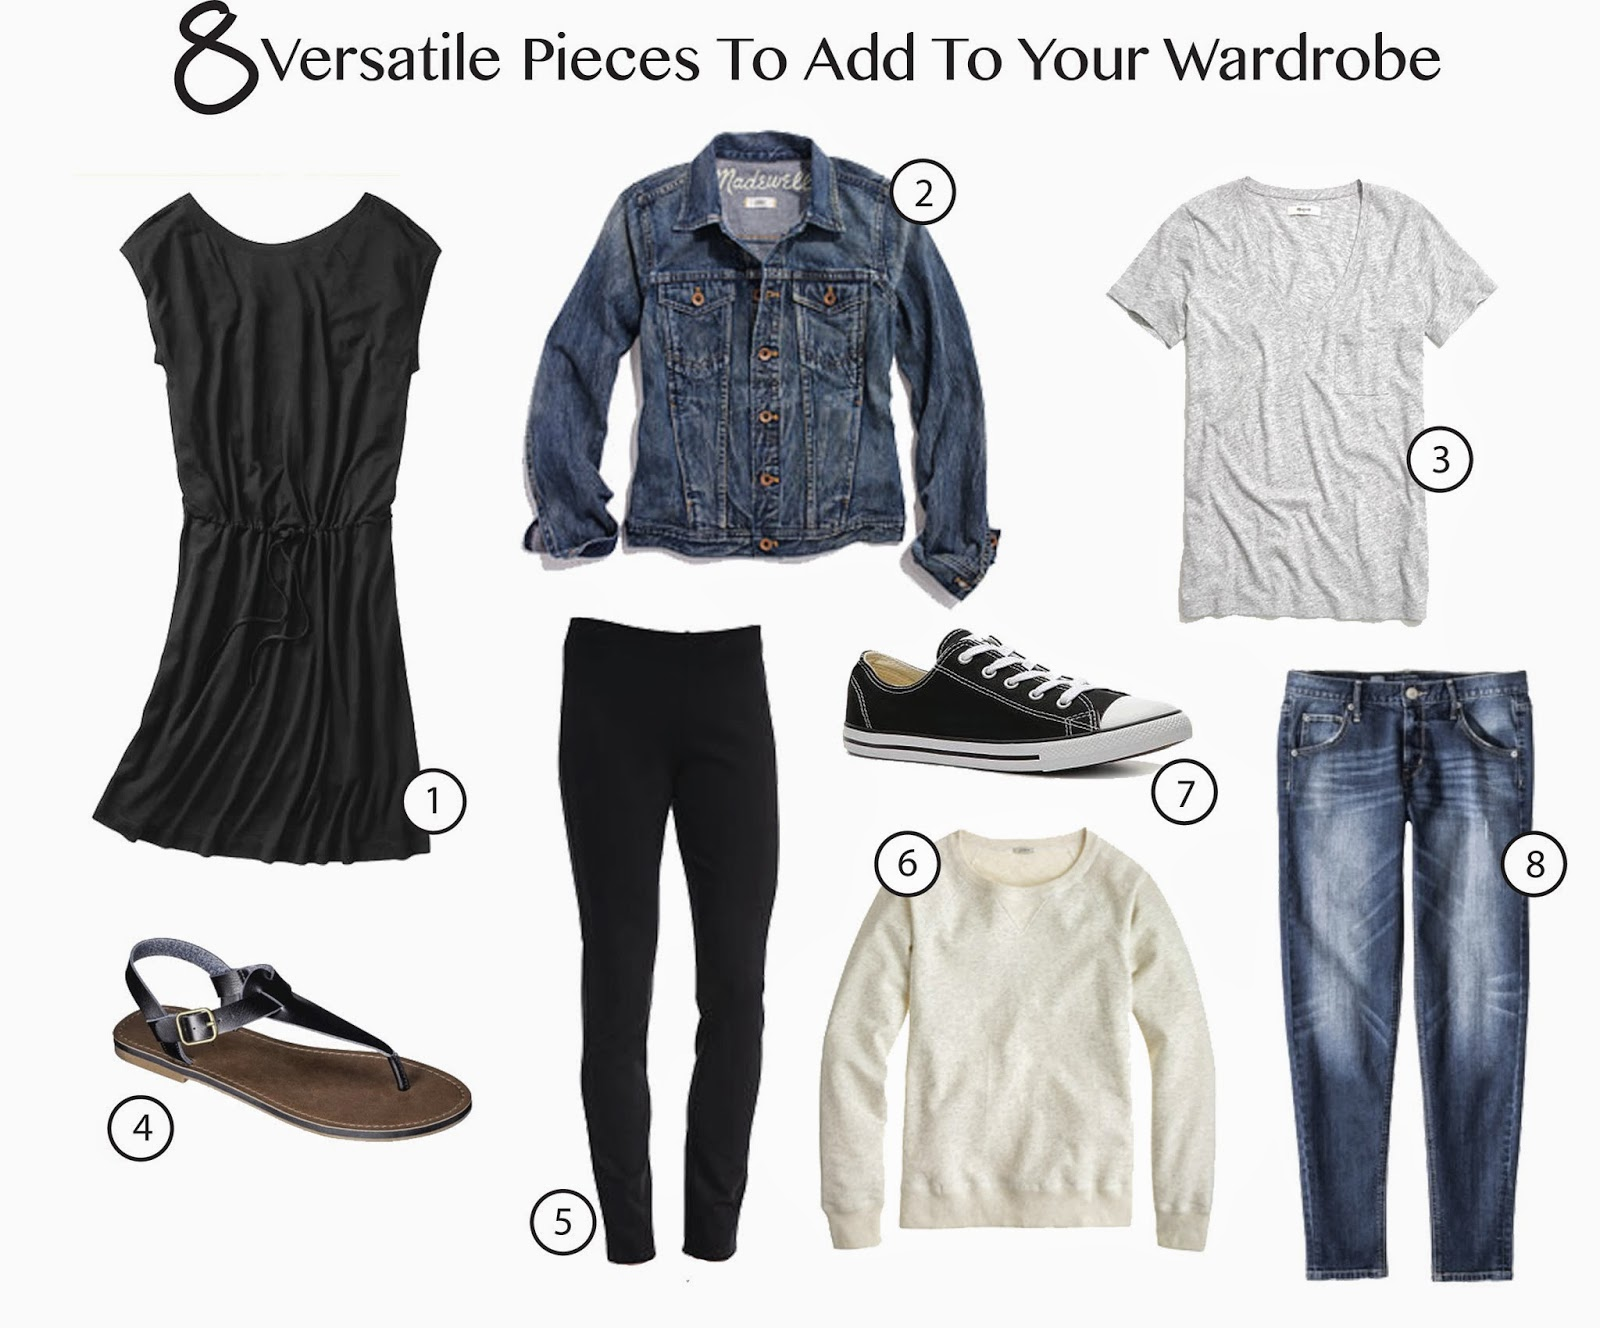 8 versatile pieces to add to your wardrobe